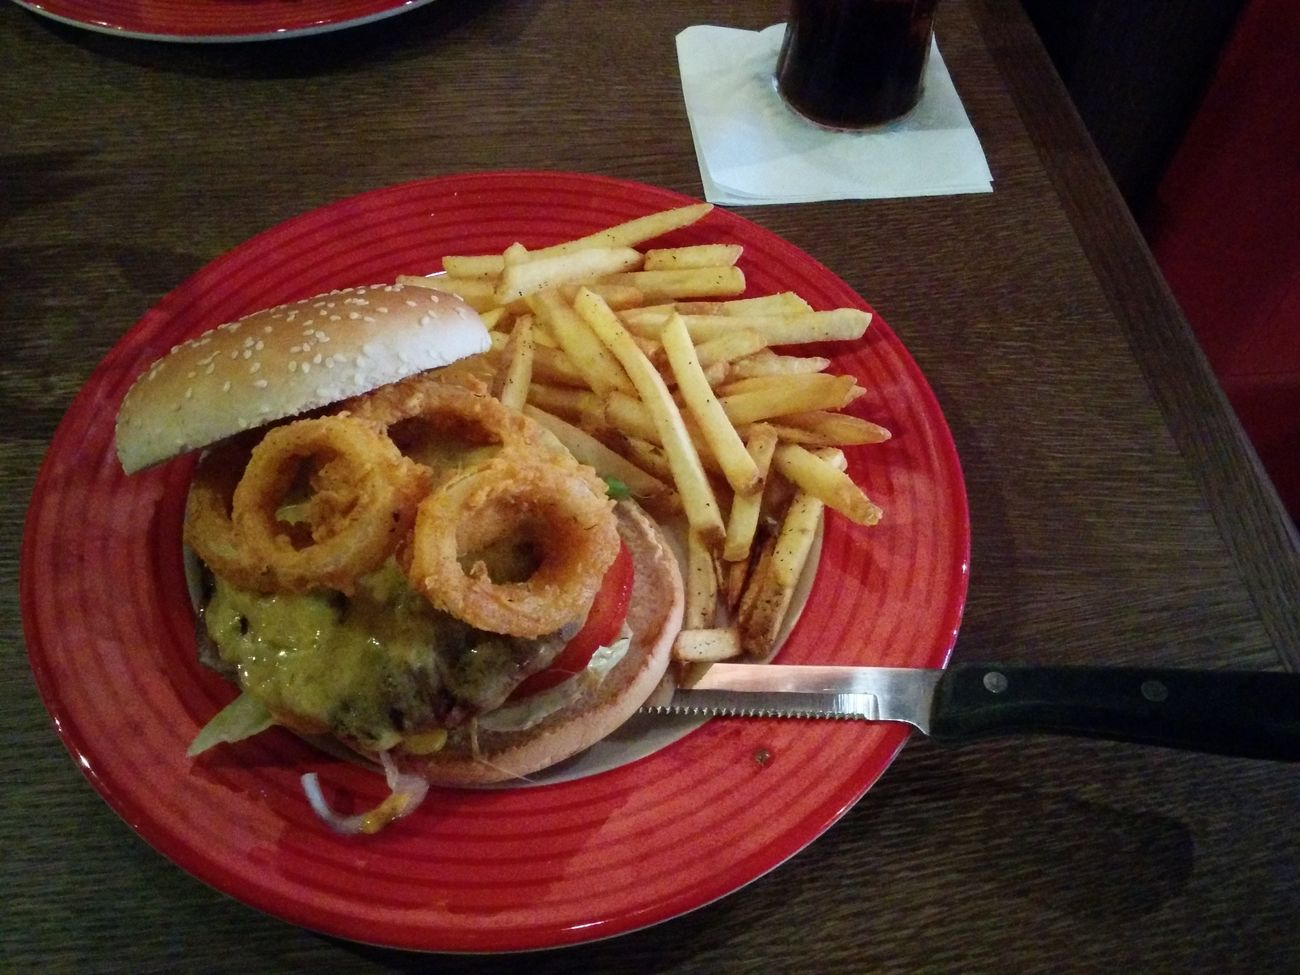 Burger essen im Friday's in Prag o.O At TGI Friday's Burger